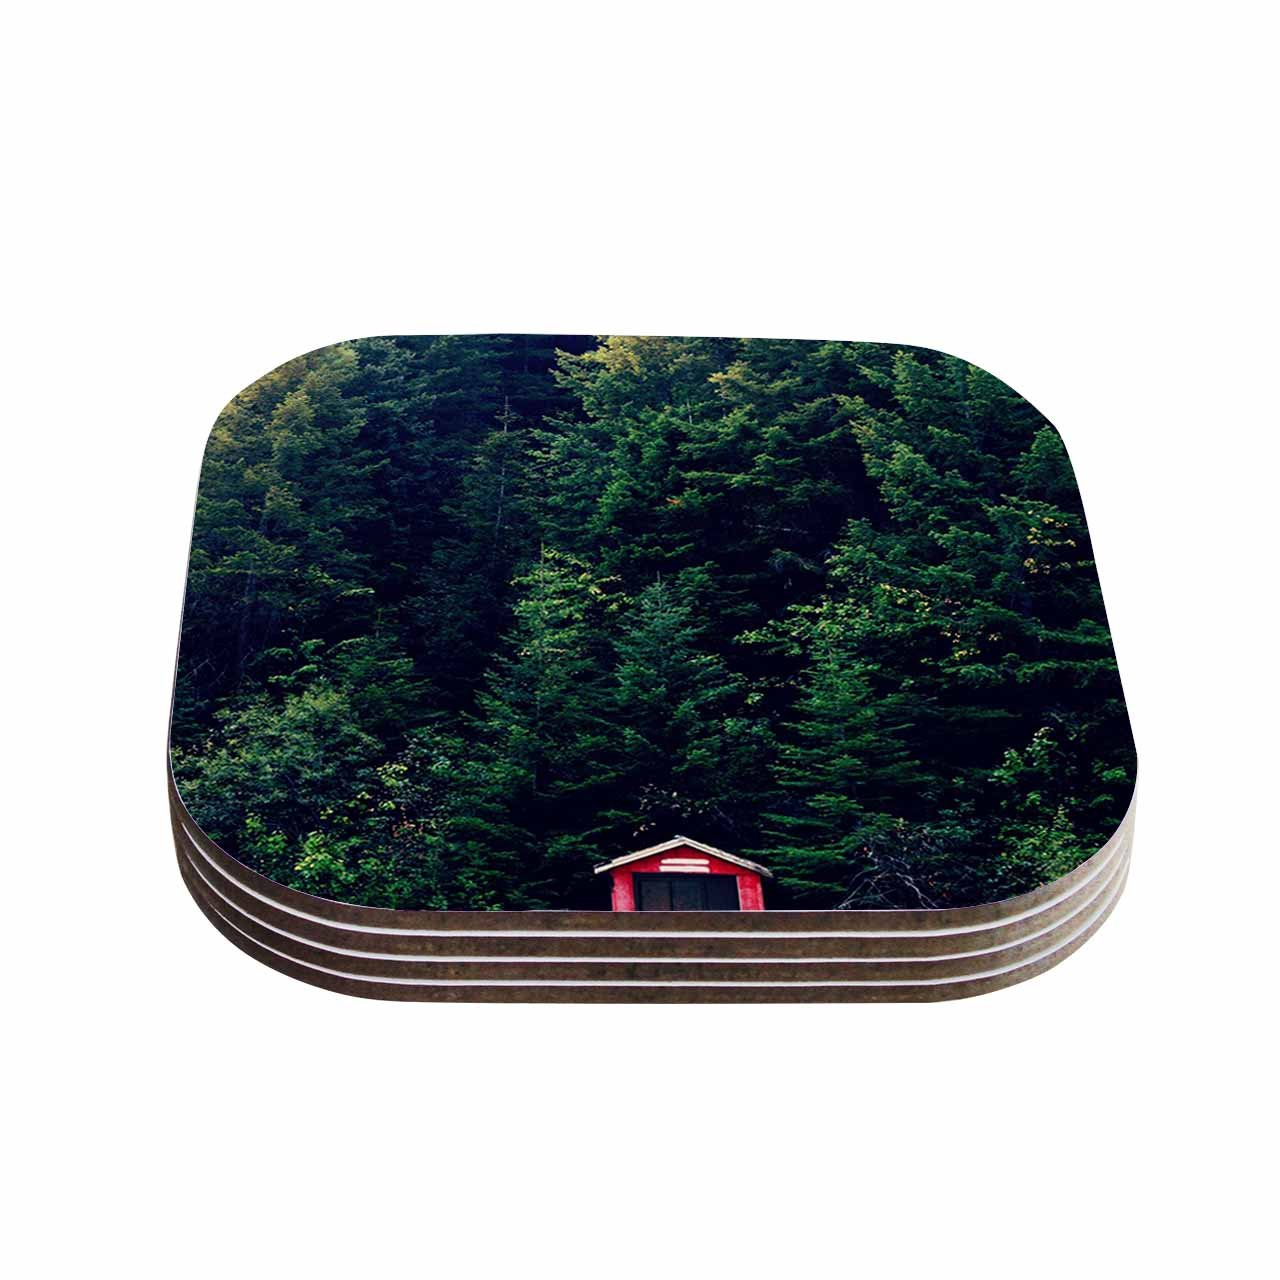 KESS InHouse Robin Dickinson'Red In Woods Forest' Coasters (Set of 4), 4 x 4', Multicolor